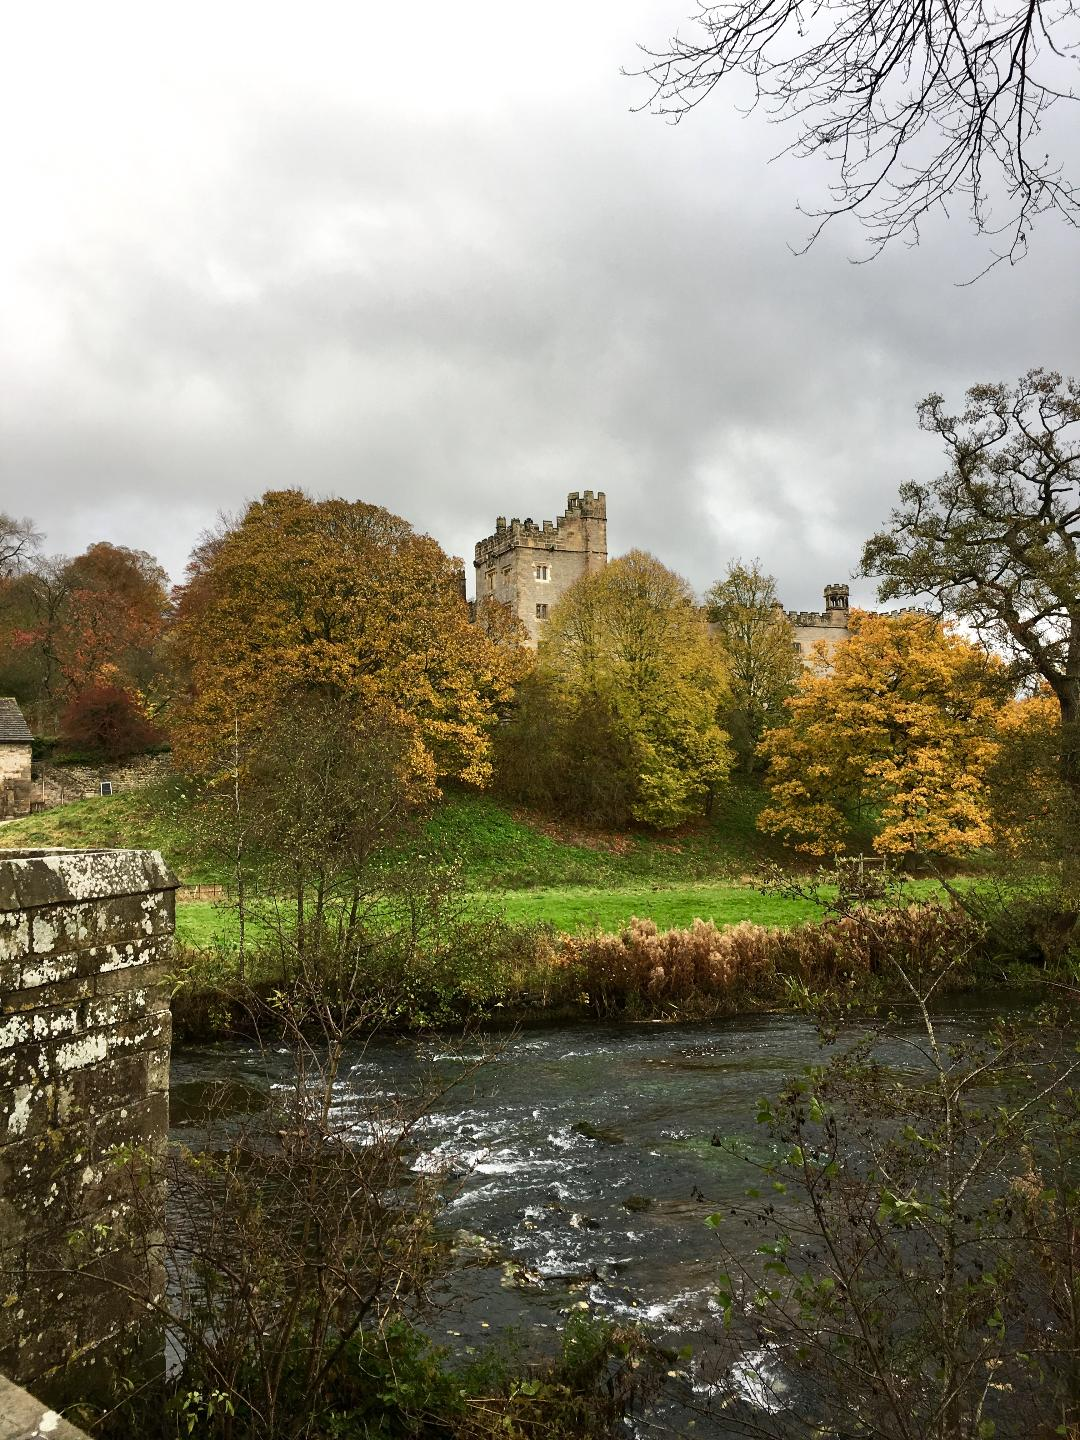 Approaching Haddon Hall, Derbyshire (photograph J. Cook)